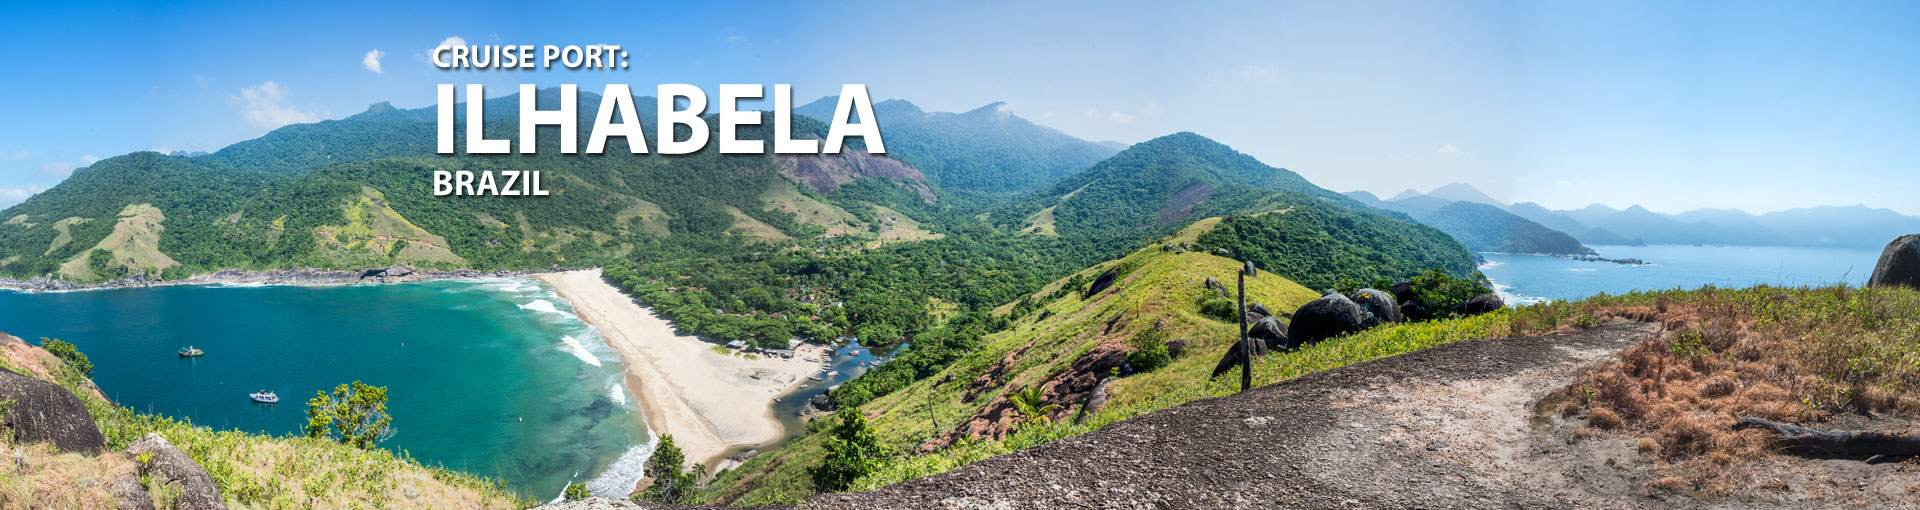 Cruises to Ilhabela, Brazil